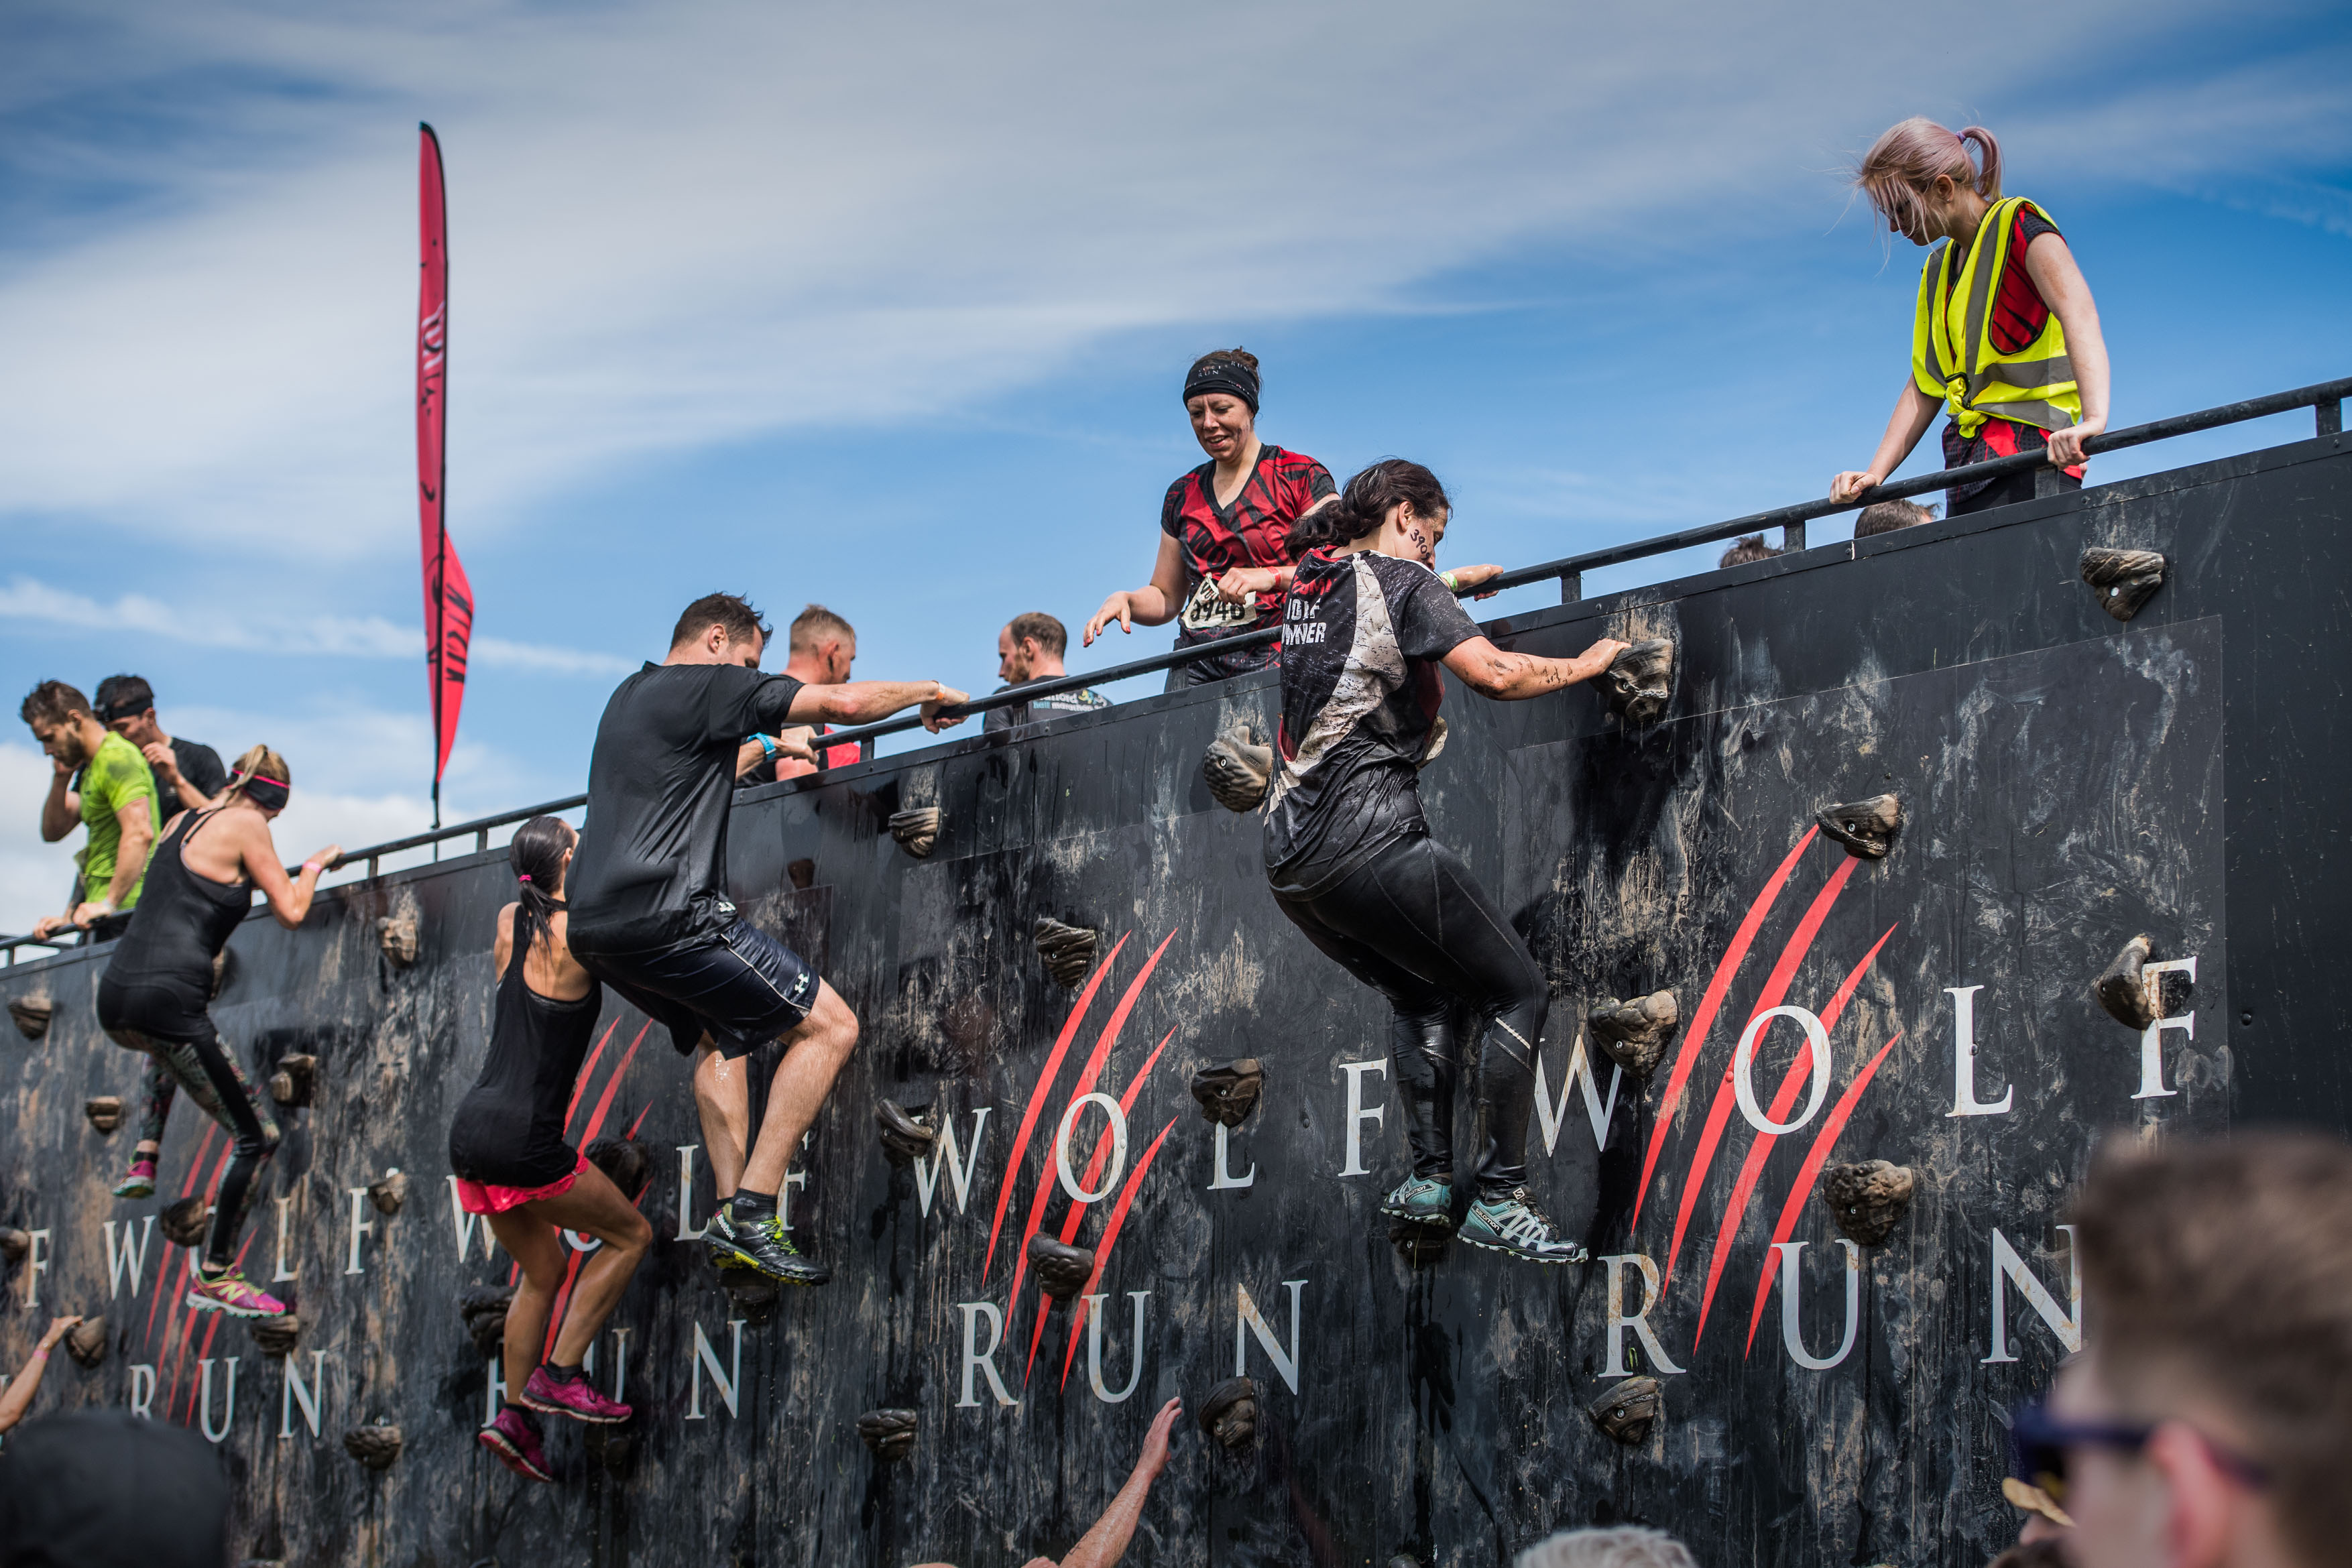 Buy four places for the Wolf Run and get one free